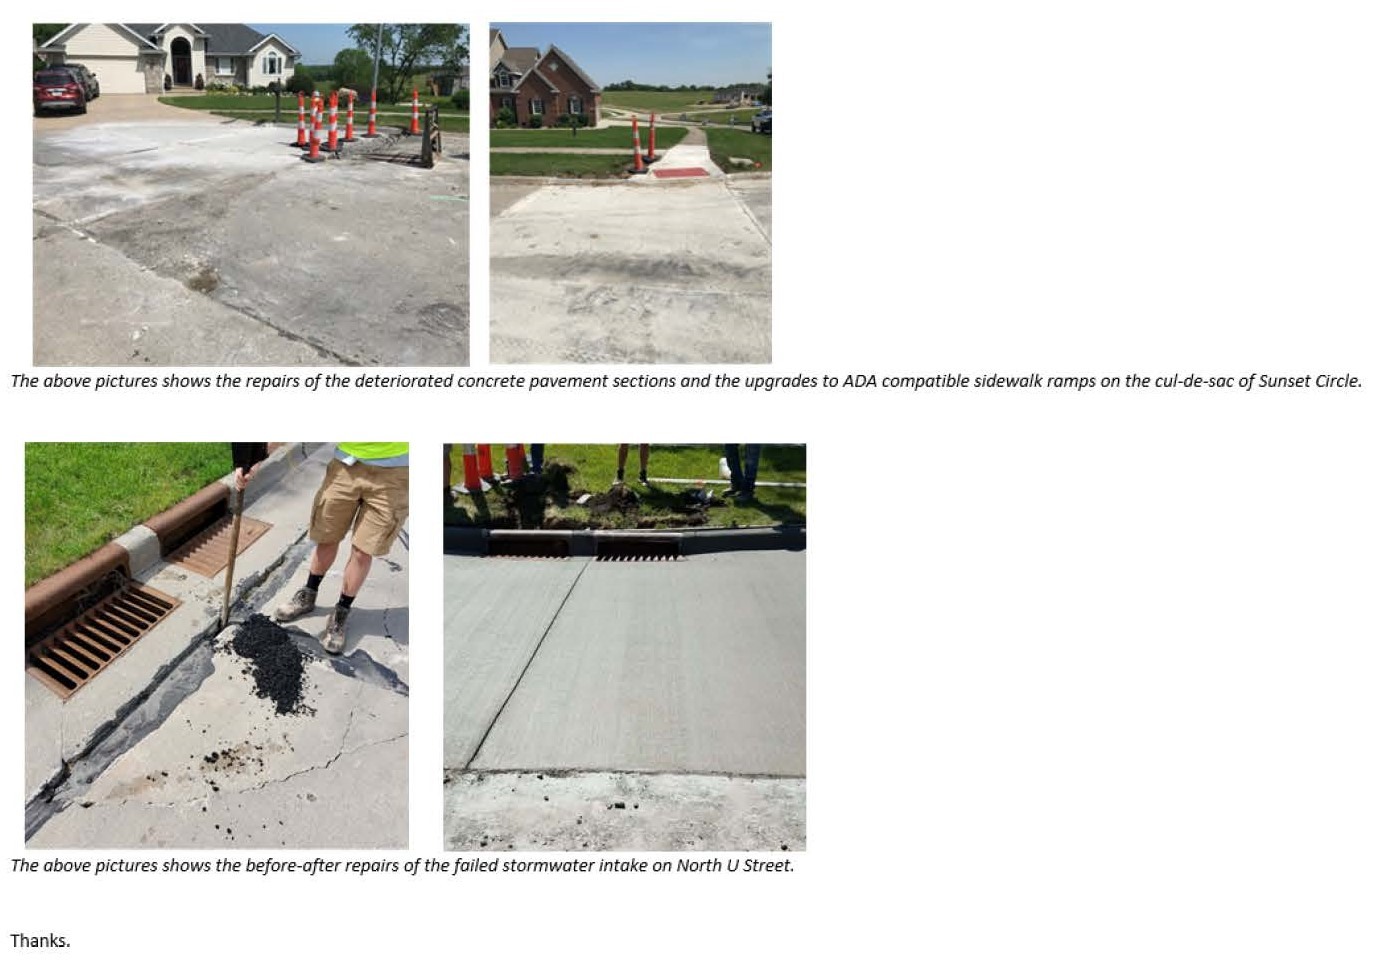 Street and Stormwater Intake Repairs